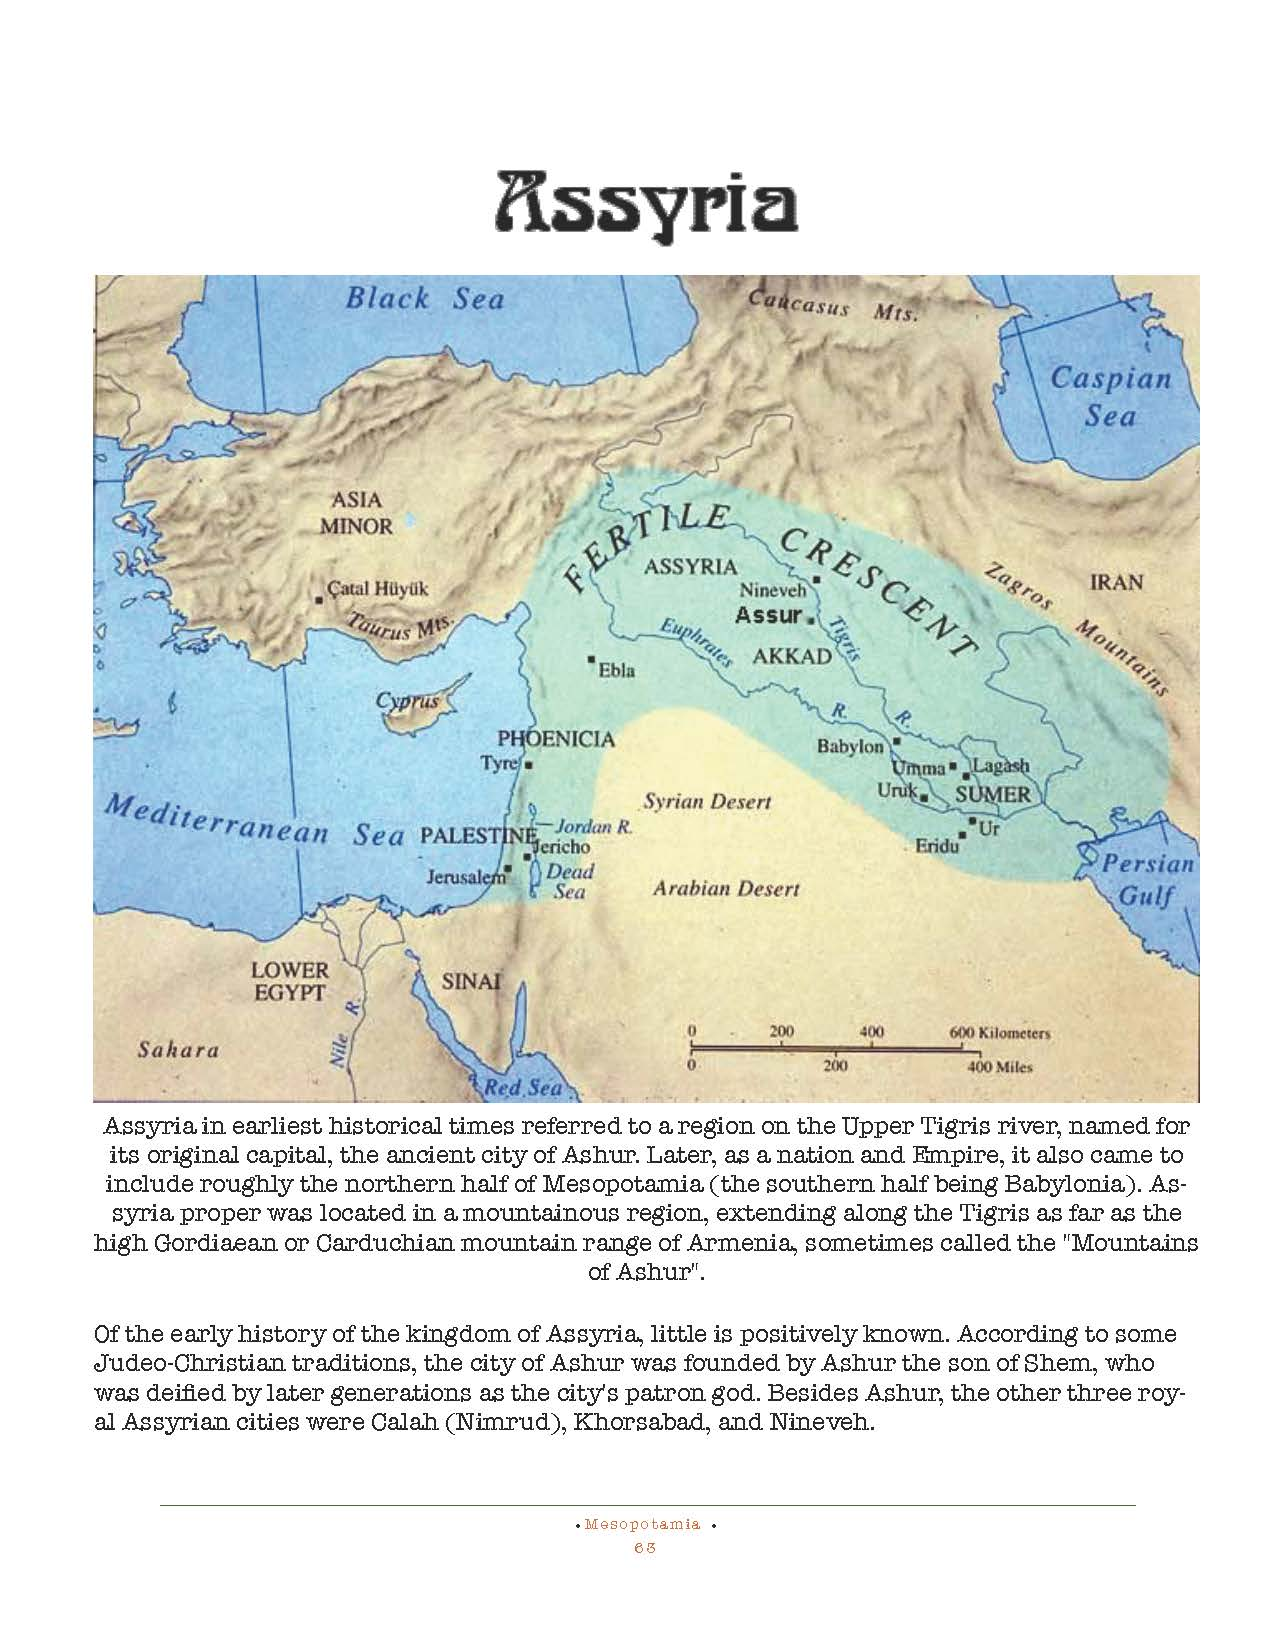 HOCE- Fertile Crescent Notes_Page_063.jpg